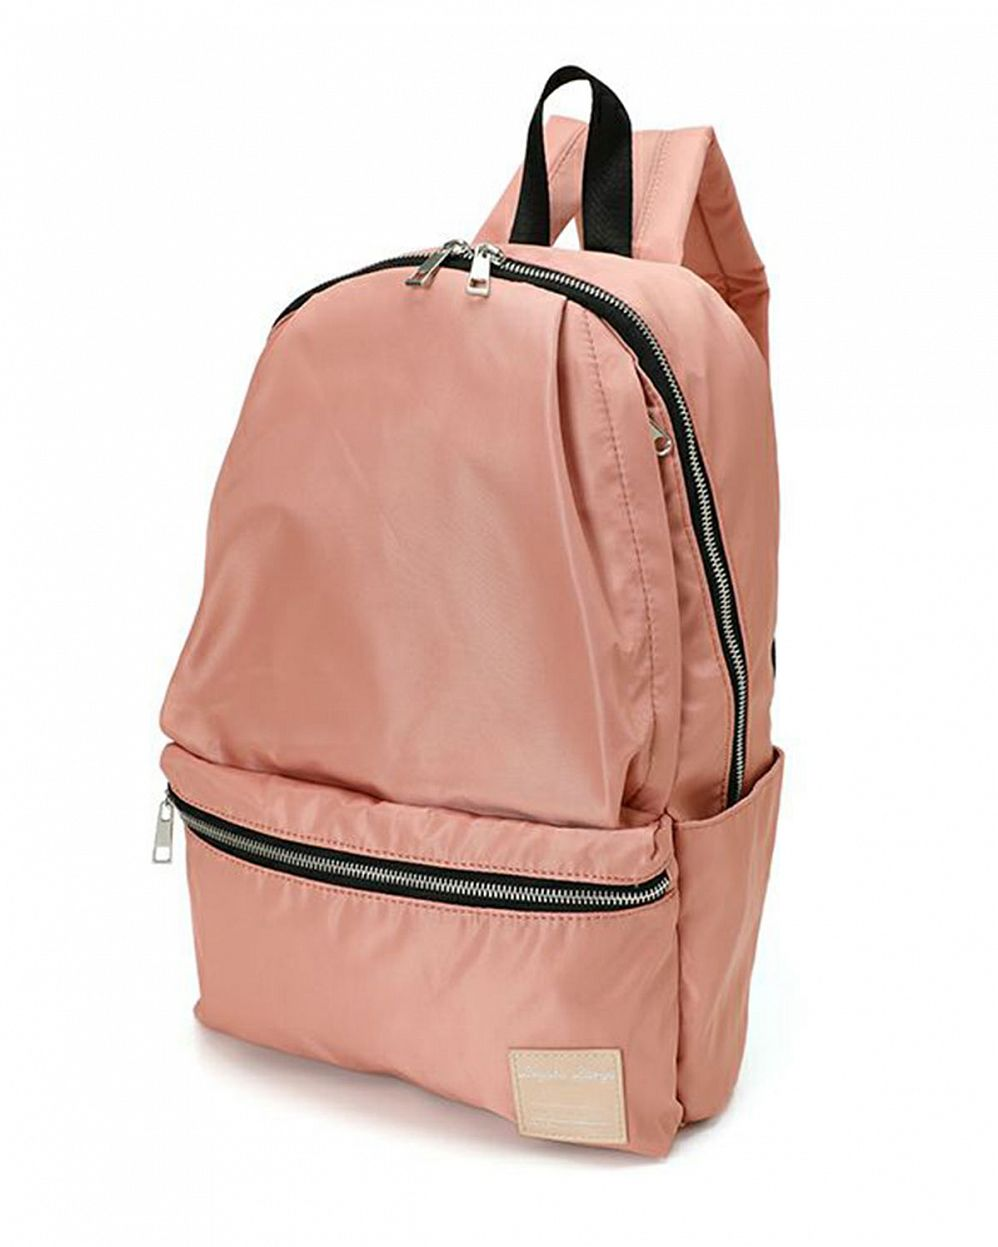 Рюкзак Legato Largo Japan Nylon LT-H1672 Pink отзывы